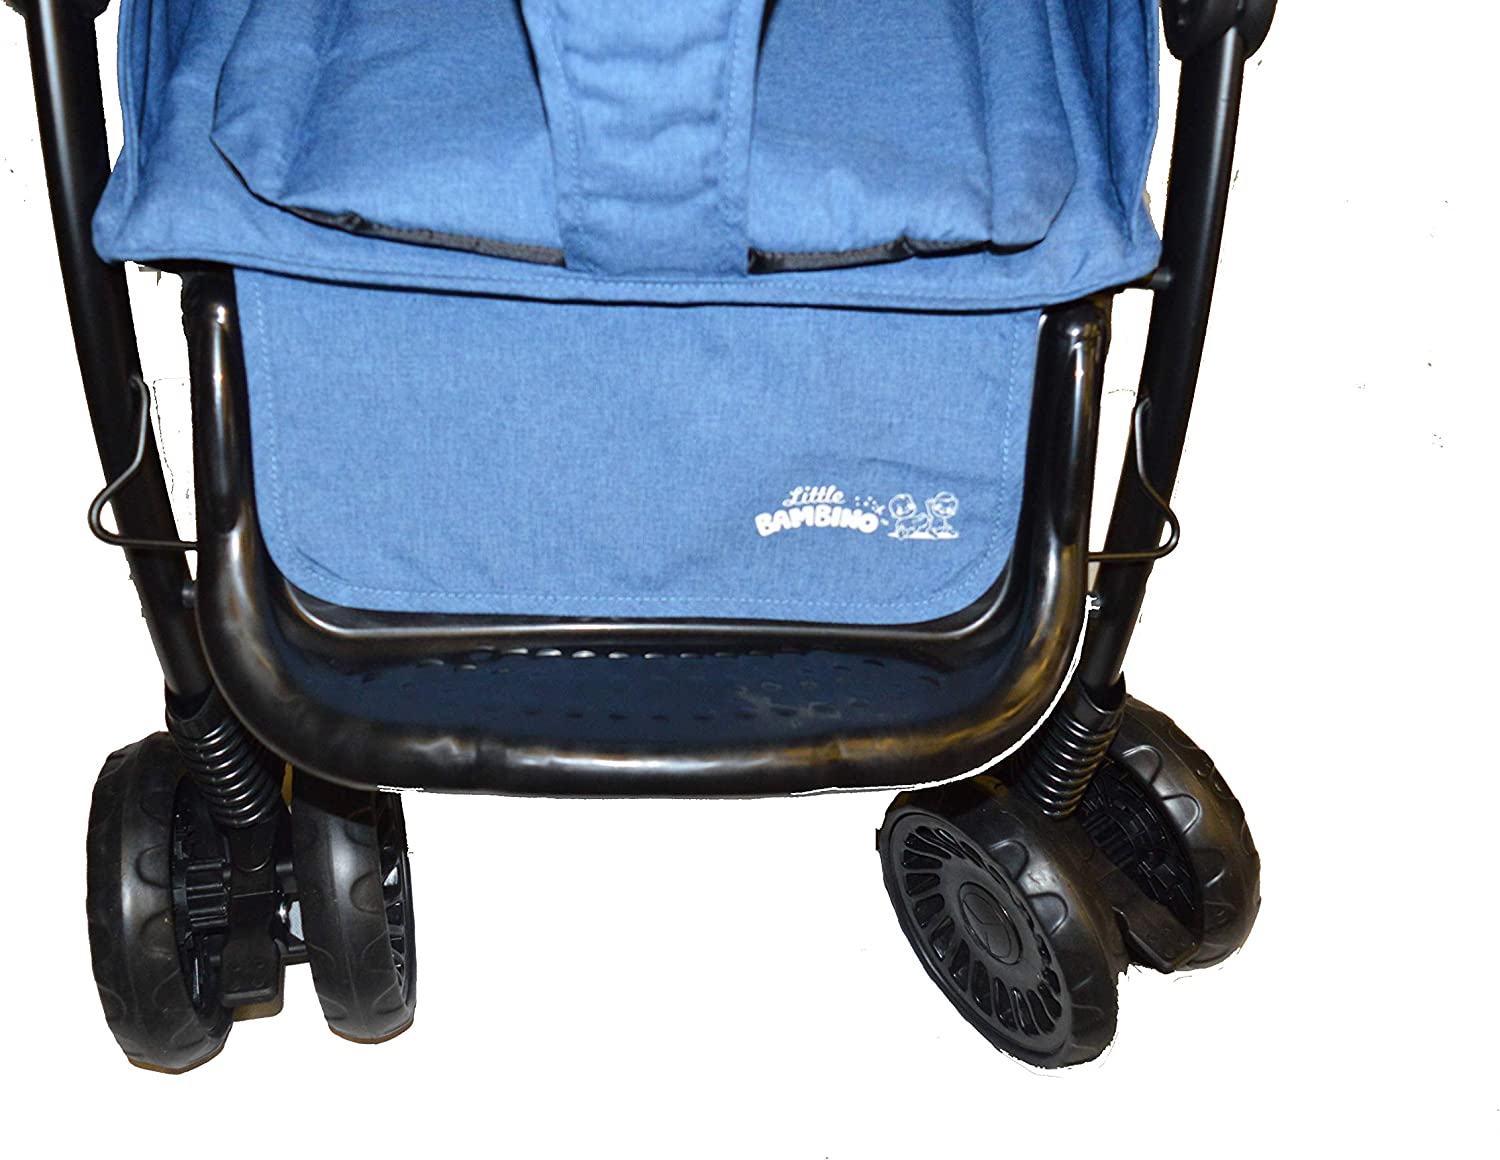 Adjustable Backrest Buggy Stroller Toddler Lightweight Pushchair Kids Four Wheel Pushchair with One Hand Fold Buggy with Lying Position with Safe Five-Point Harness and Brake Small Foldable